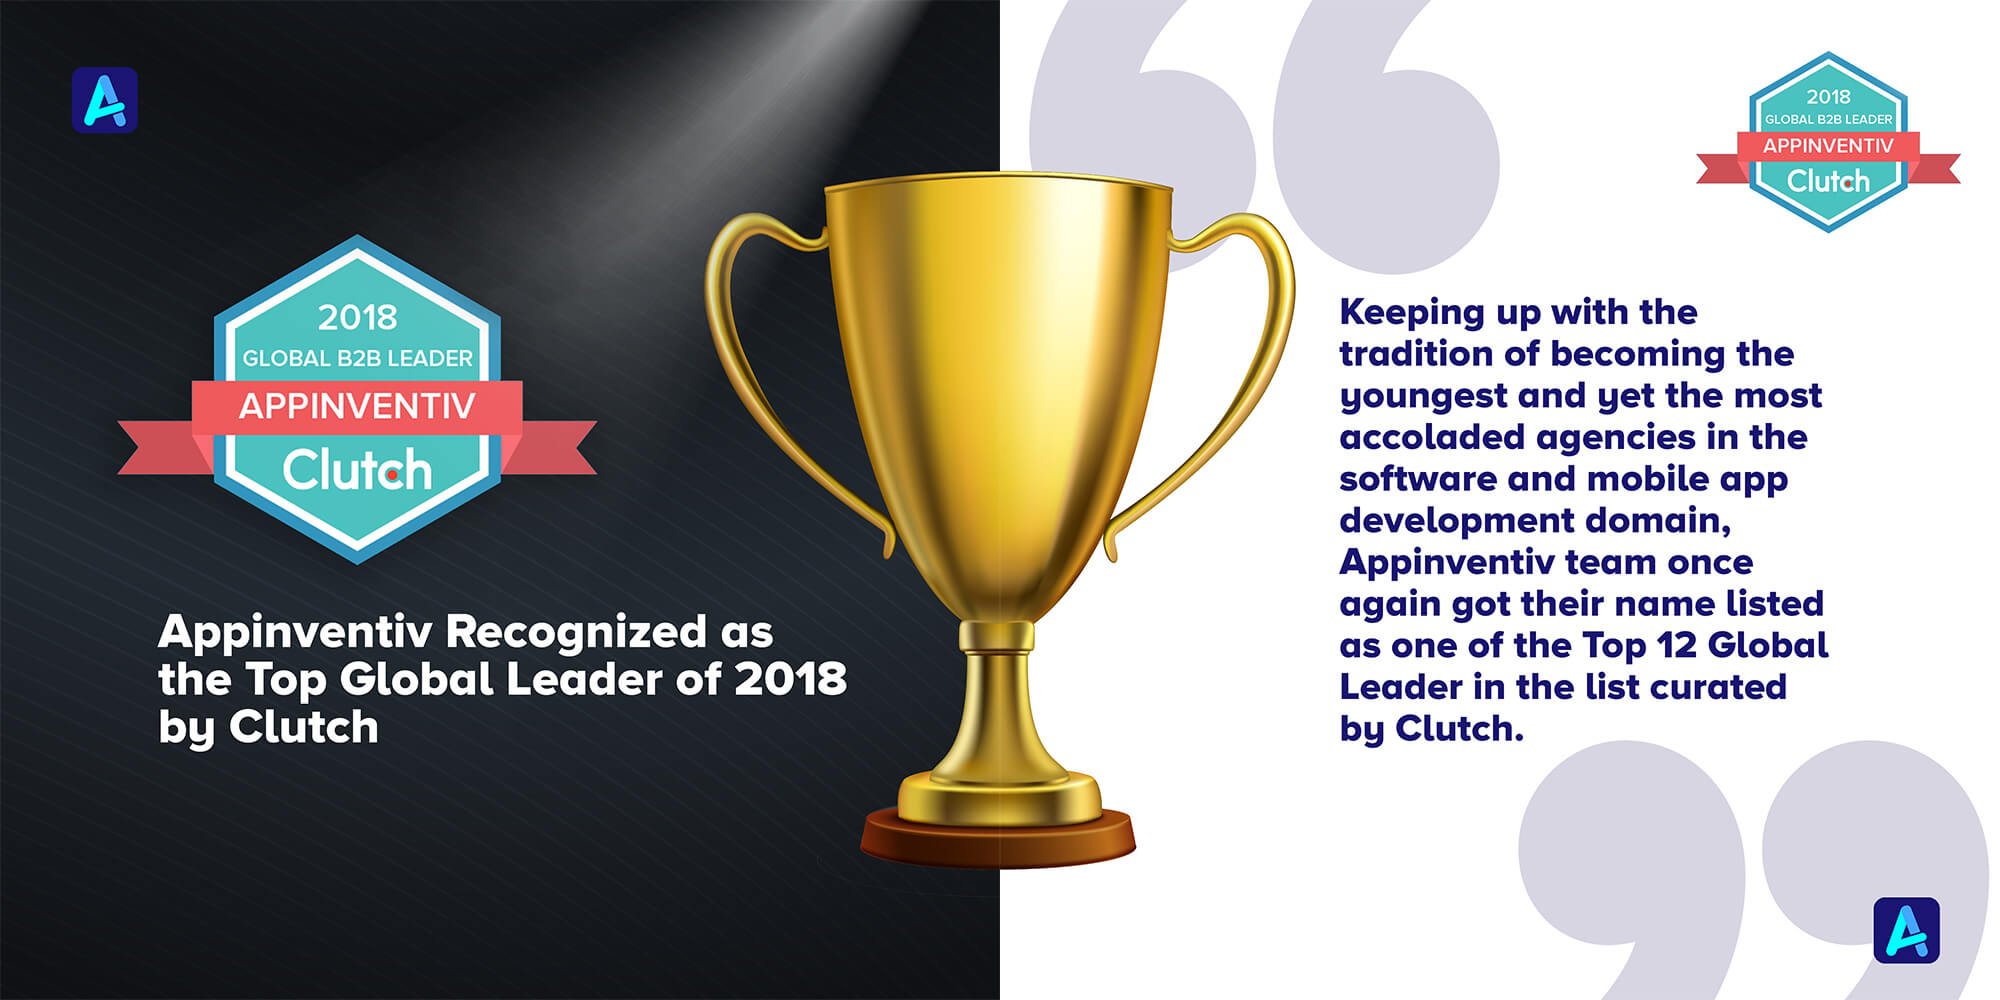 Appinventiv Recognized as the Top Global Leader of 2018 by Clutch